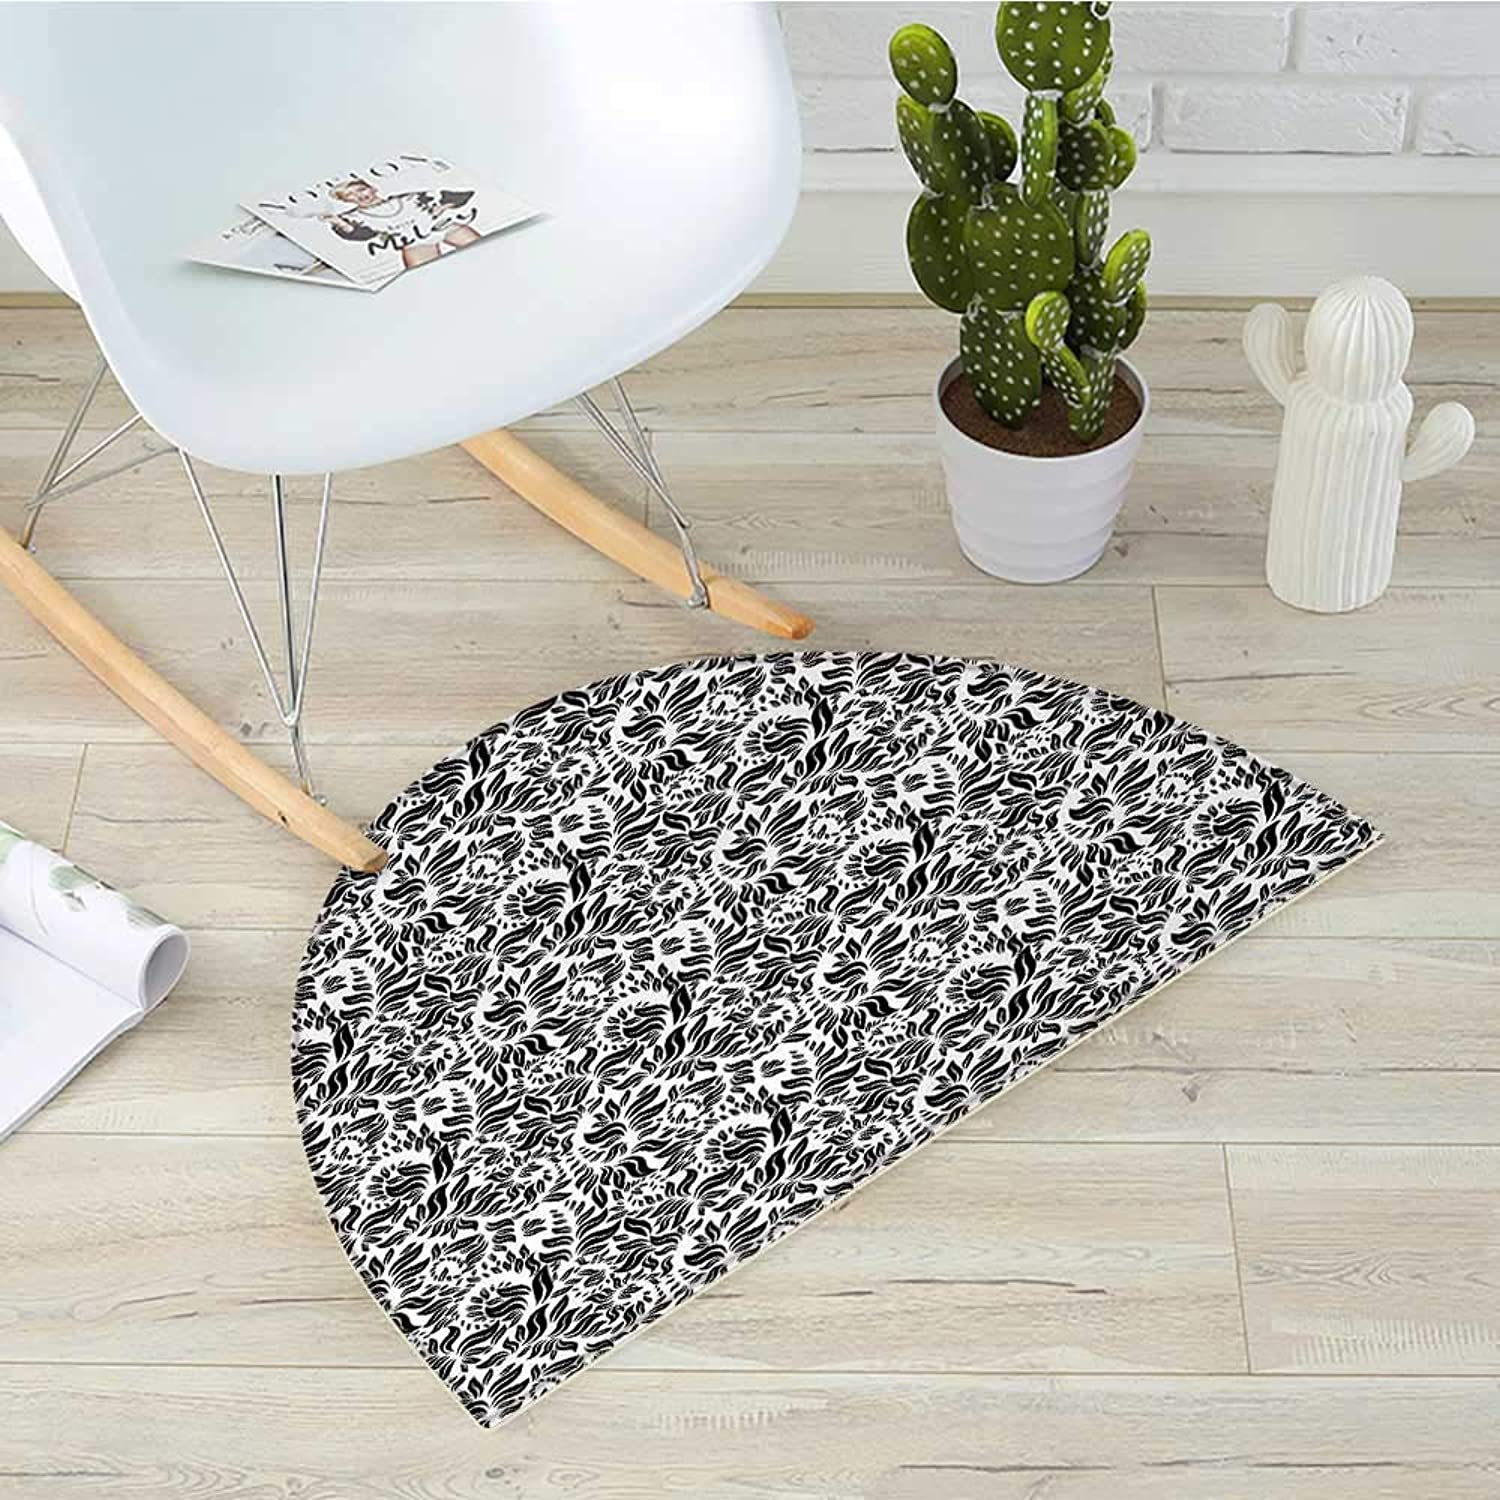 Floral Semicircular CushionModern Flower Herbs Plants Woodland Flourish Branches Leaves Nature Illustration Entry Door Mat H 35.4  xD 53.1  Black White